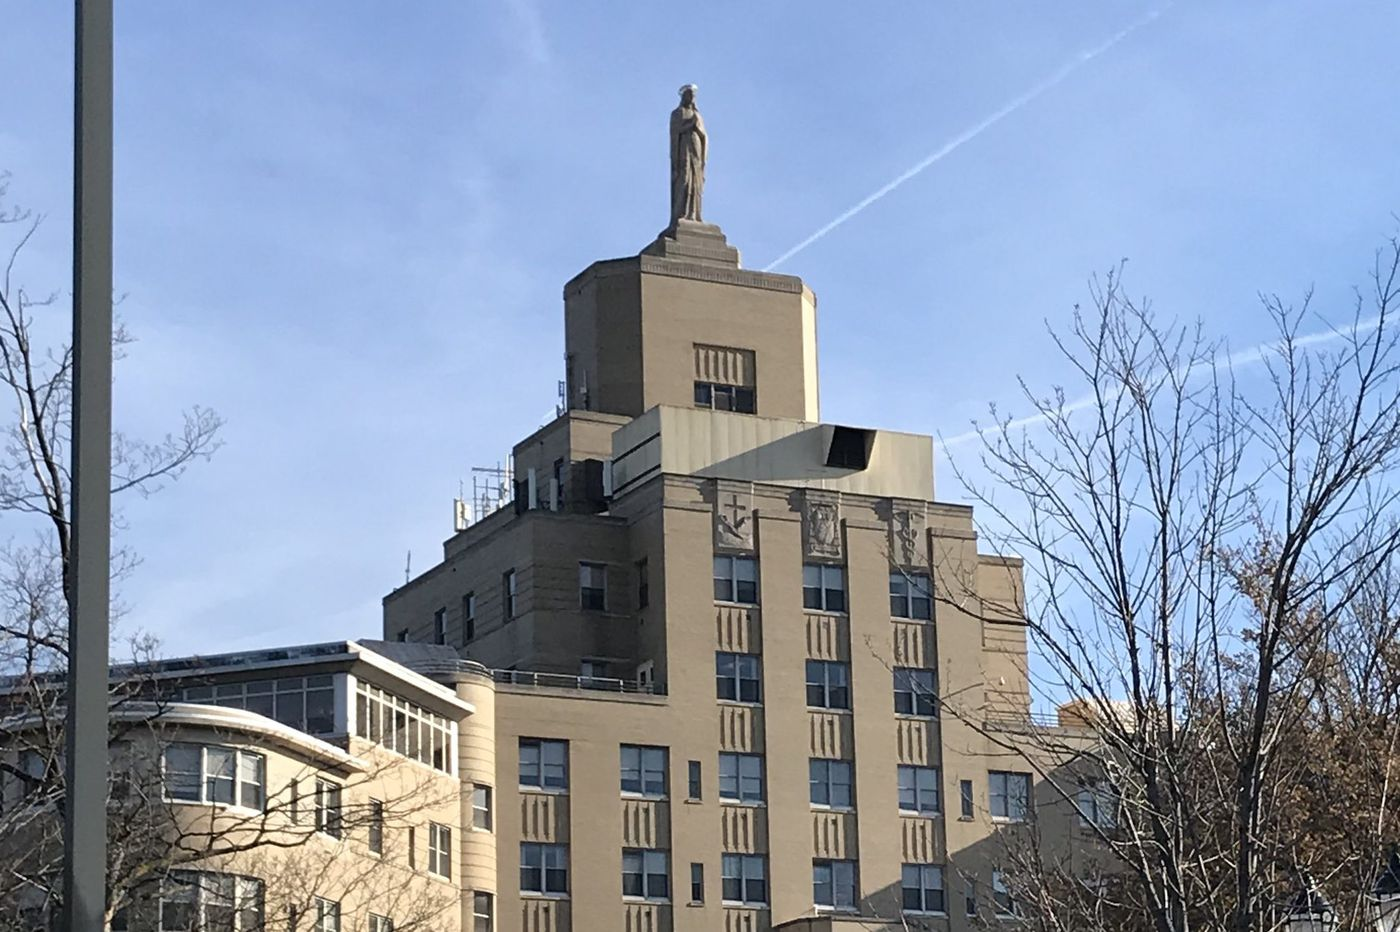 Trinity Health expects a $75M to $100M loss on sale of Lourdes Health System to Virtua Health